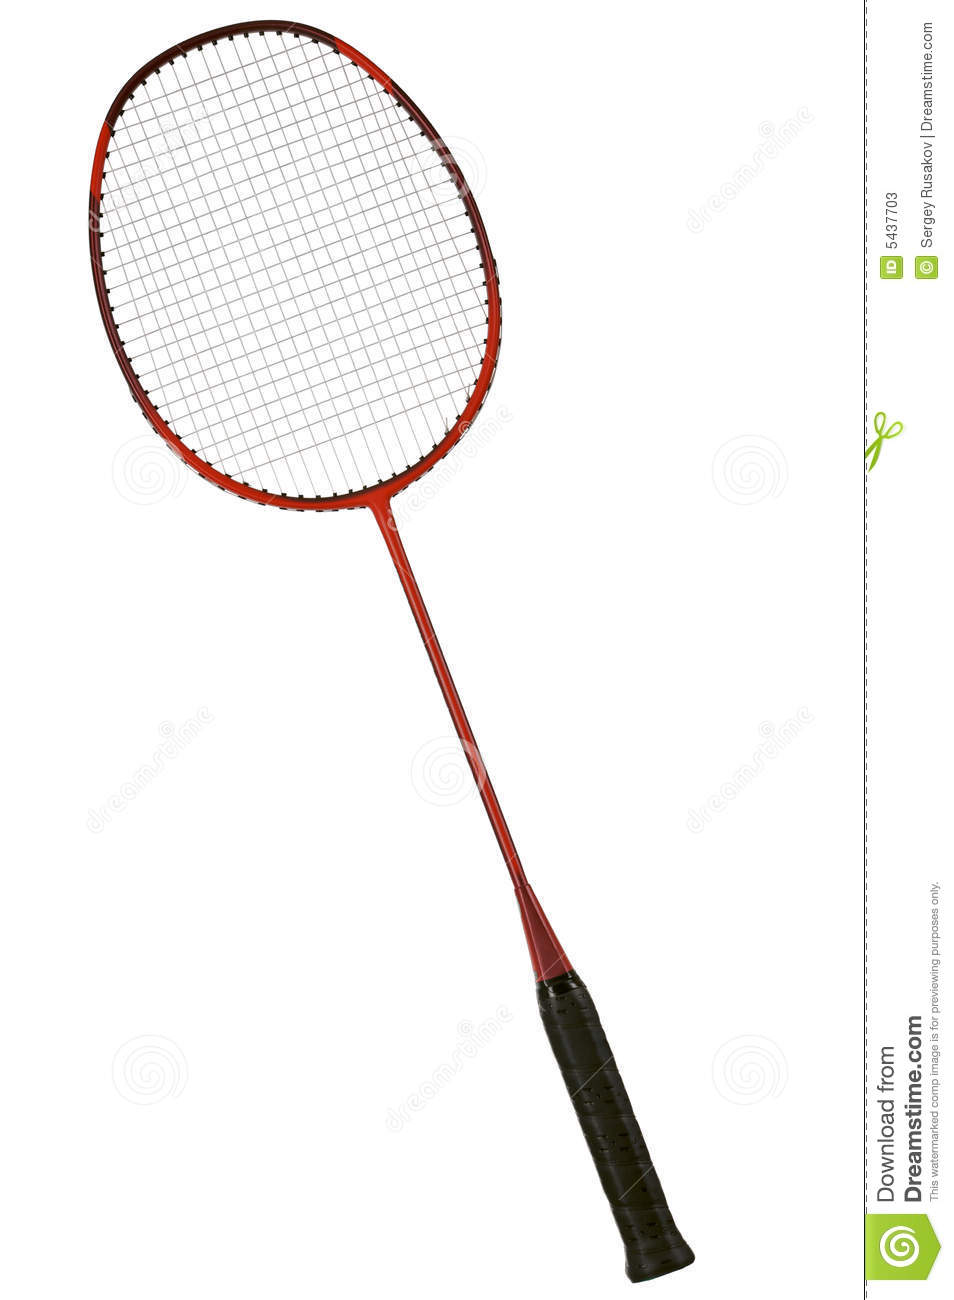 Racket clipart badminton net. Stock image of space png download